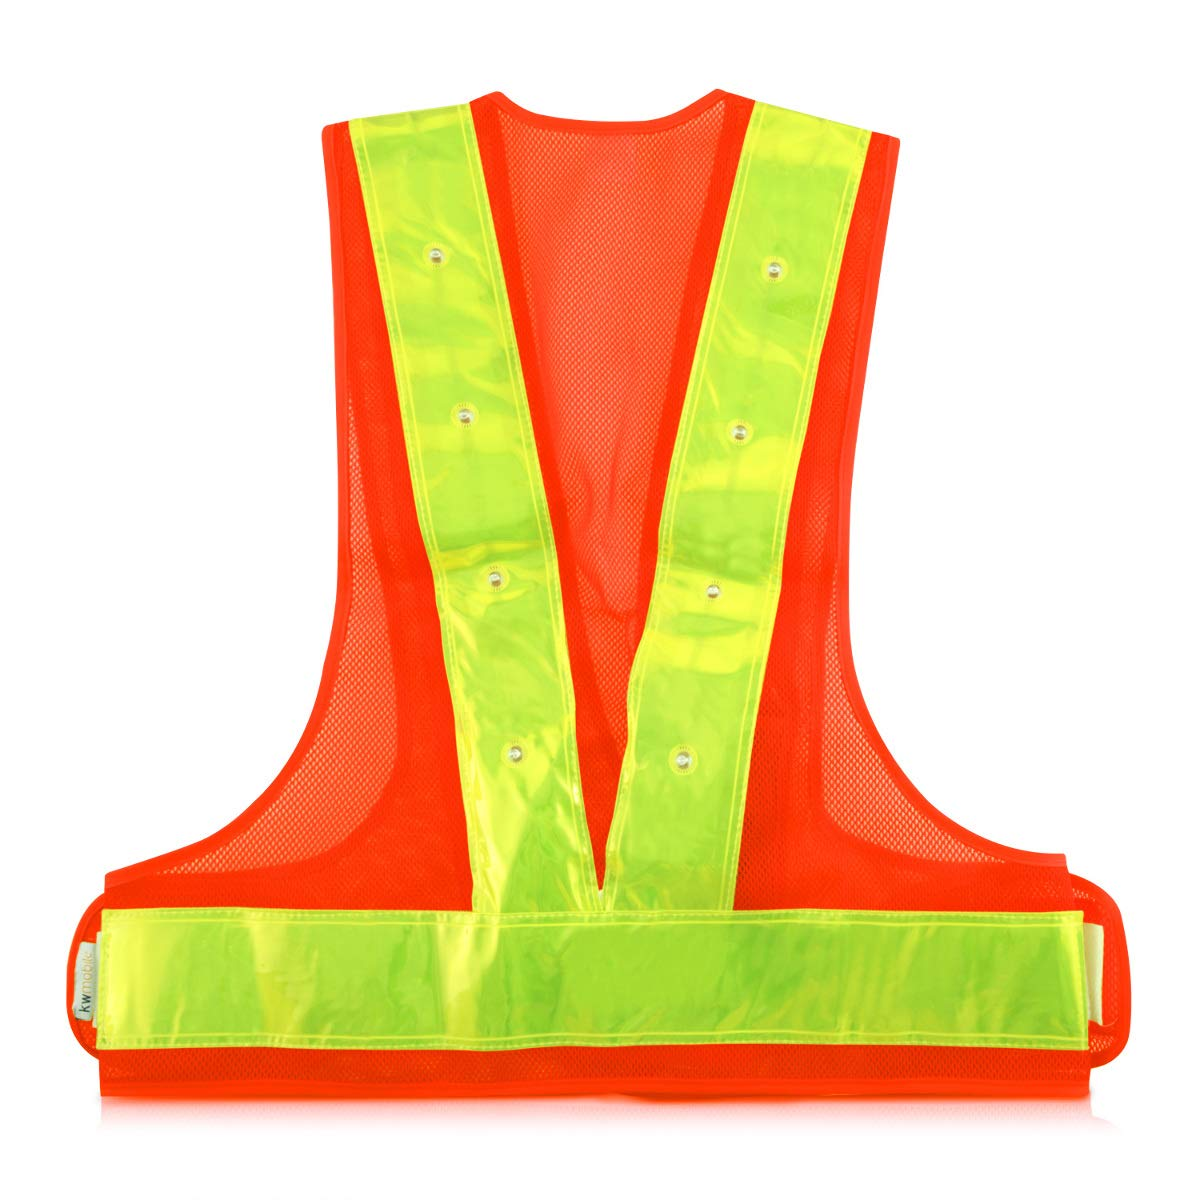 kwmobile LED Light Safety Vest High Visibility Waistcoat Traffic Outdoor Night Warning Reflector Clothing with Reflective Stripes and 16 LED Lights